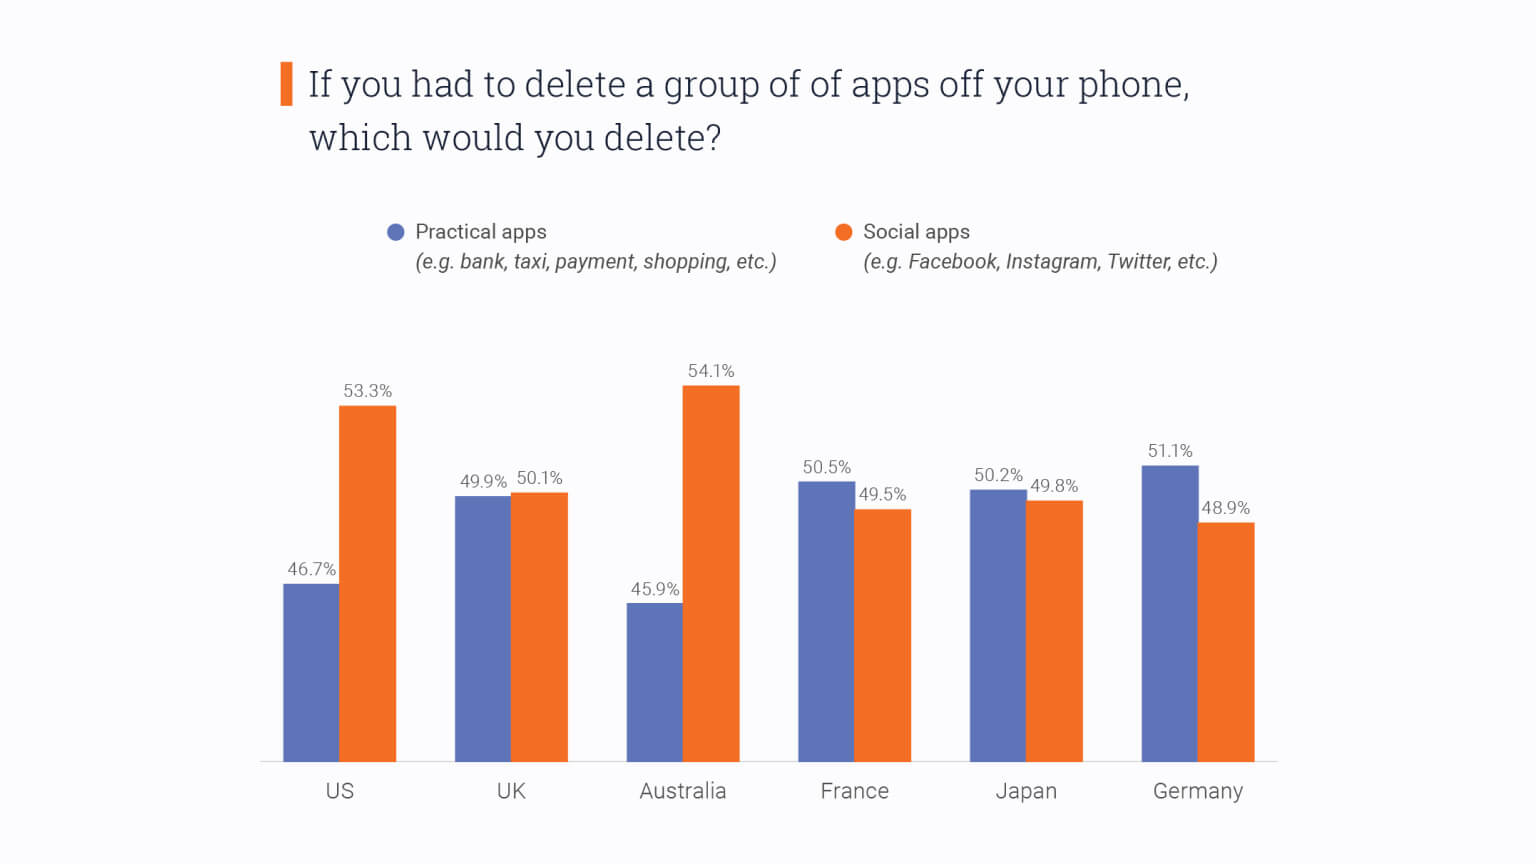 Graph: If you had to delete practical apps or social apps, which would you delete?